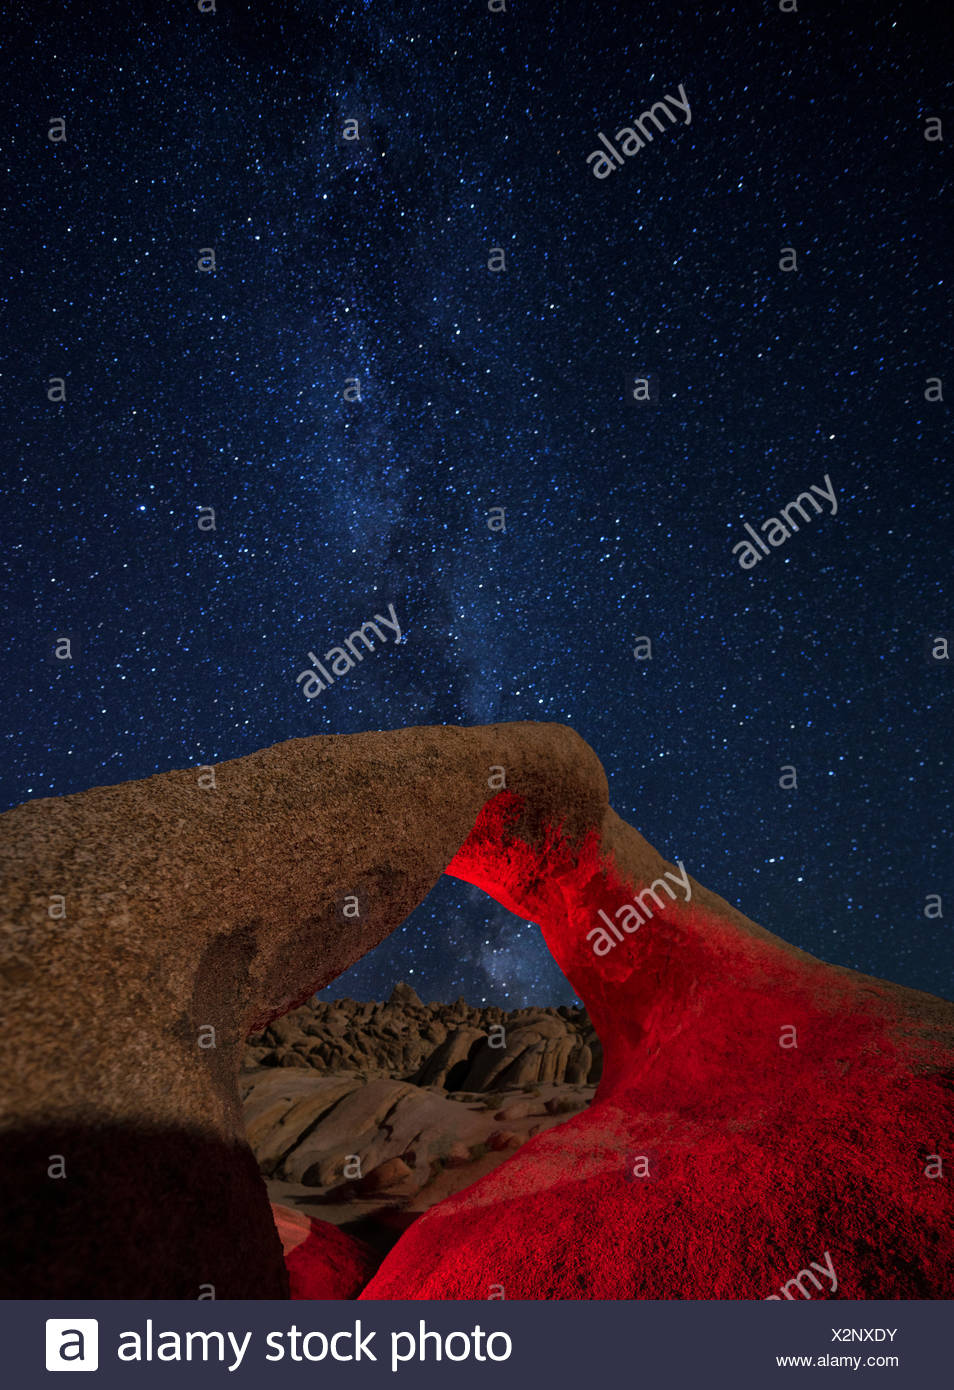 USA,California,Eastern Sierra,Lone Pine,Alabama Hills,Mobius Arch - Stock Image